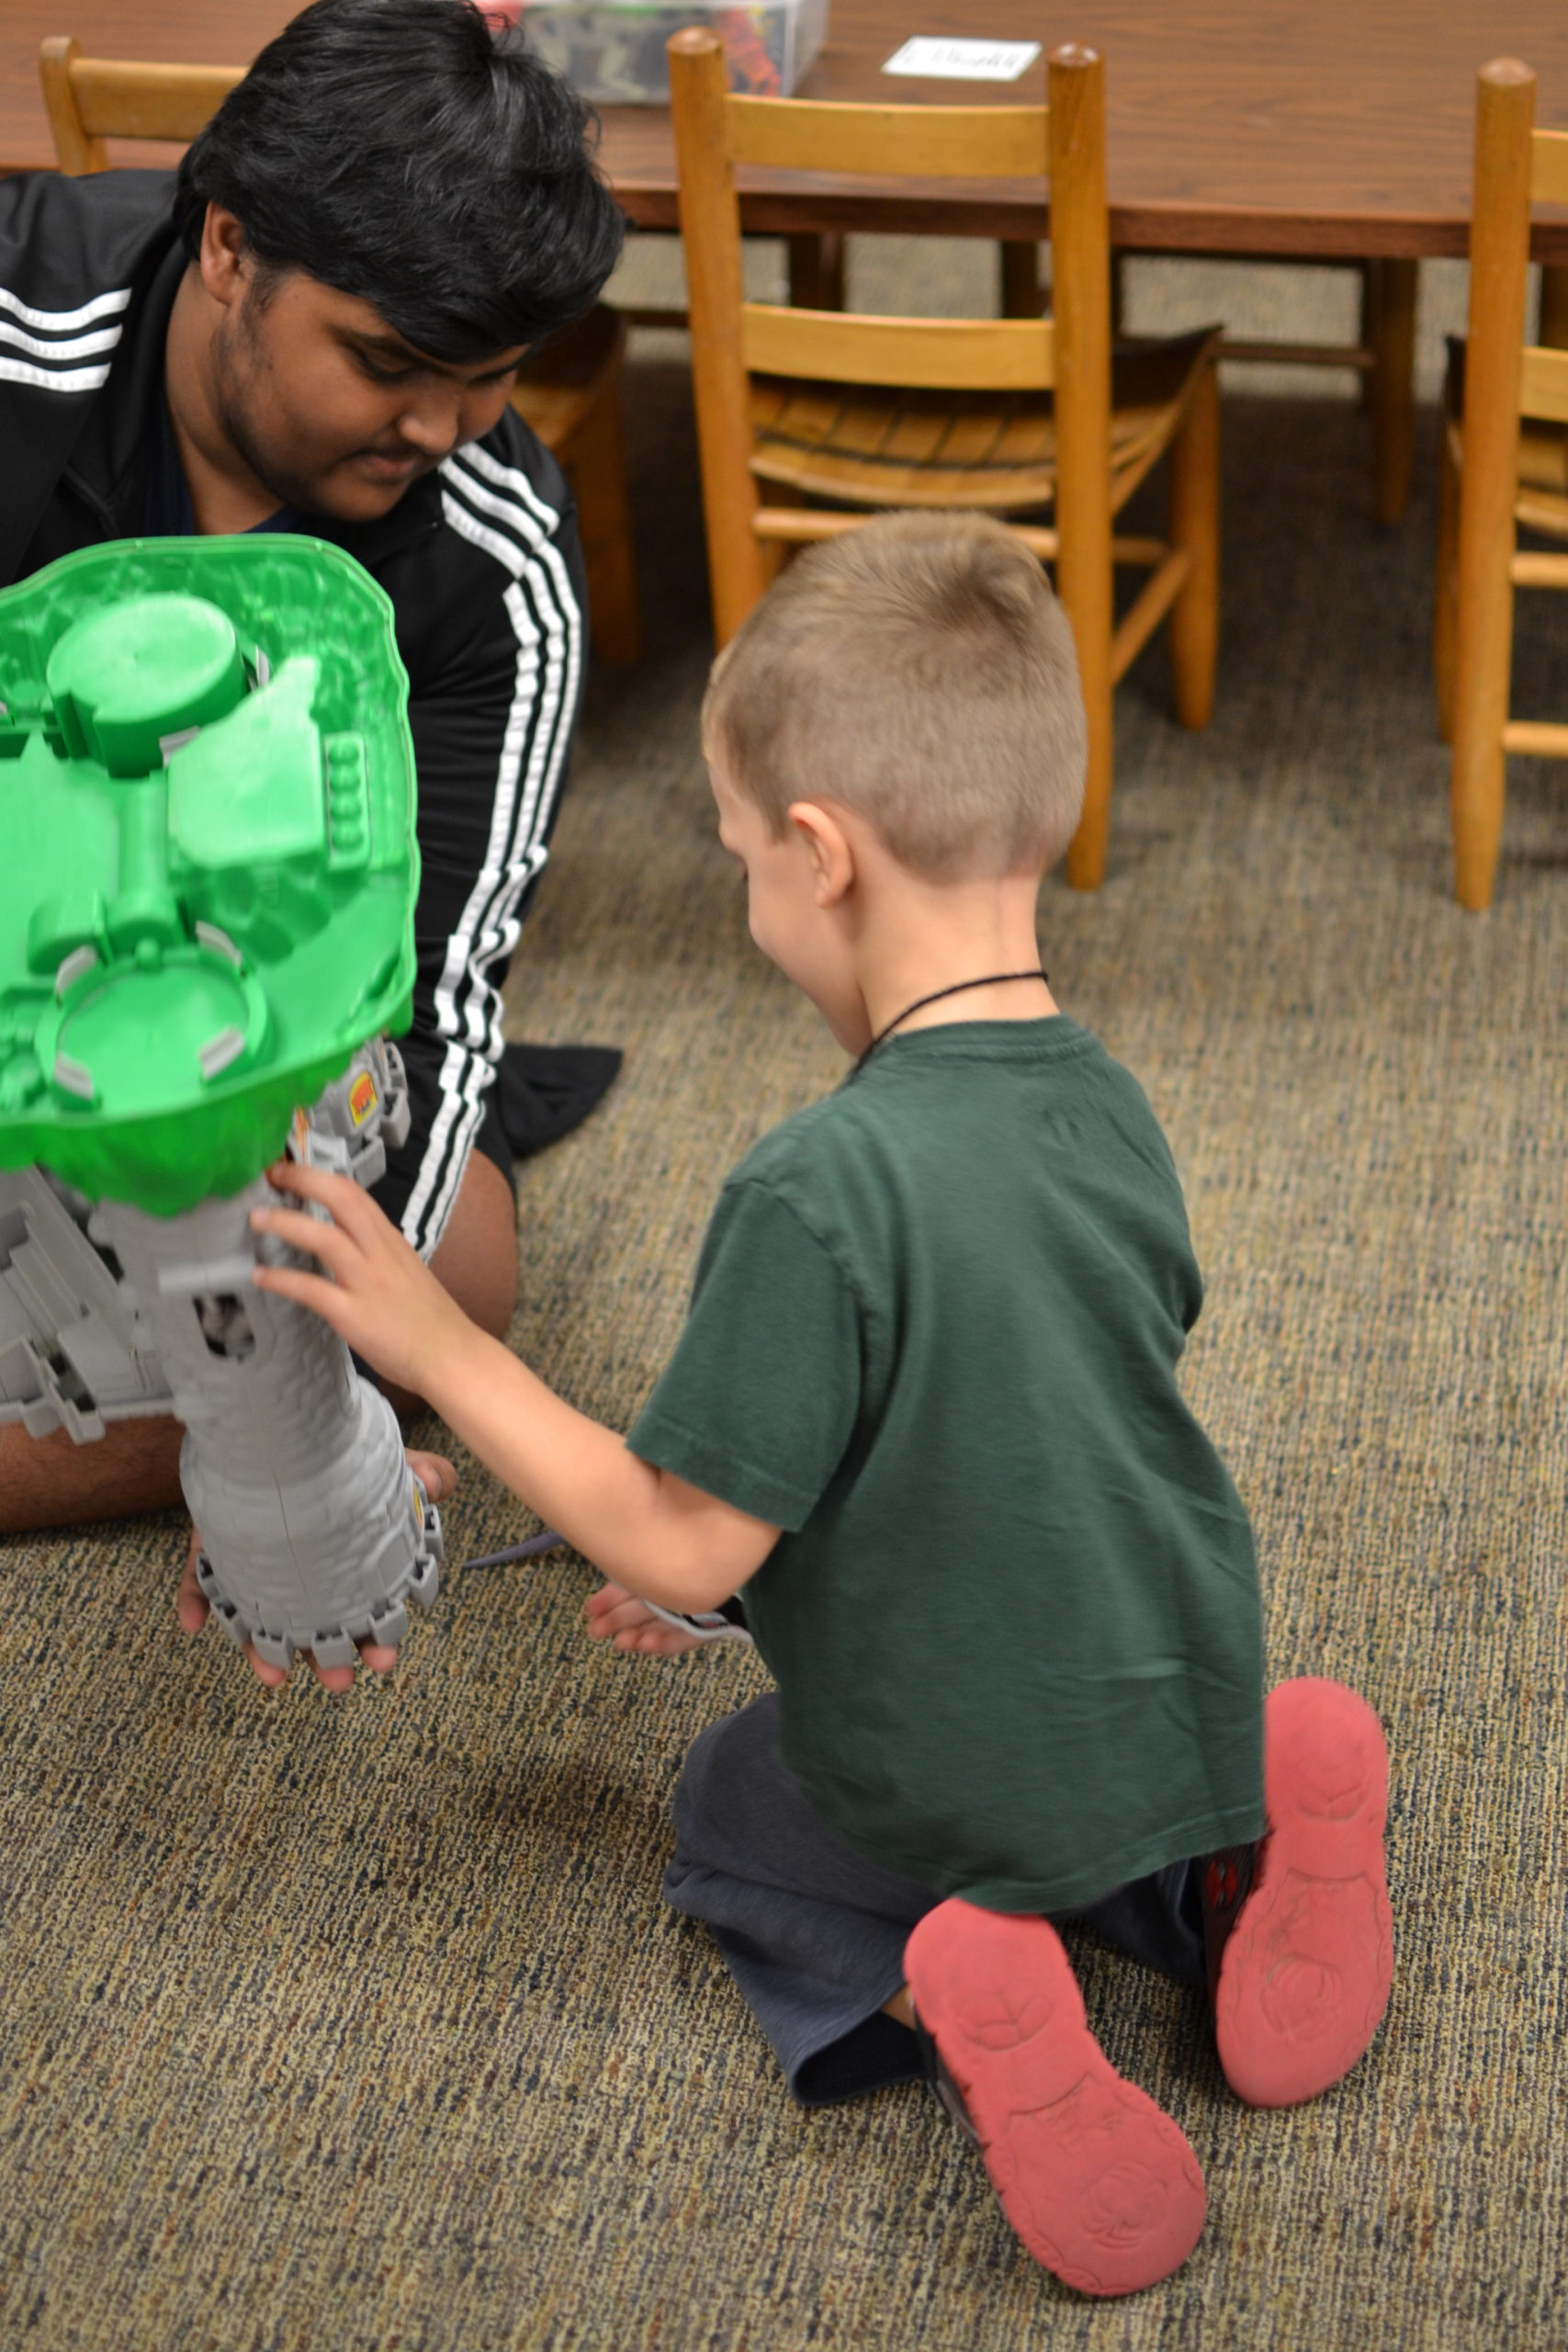 Child Development: A learning experience for both students and preschoolers